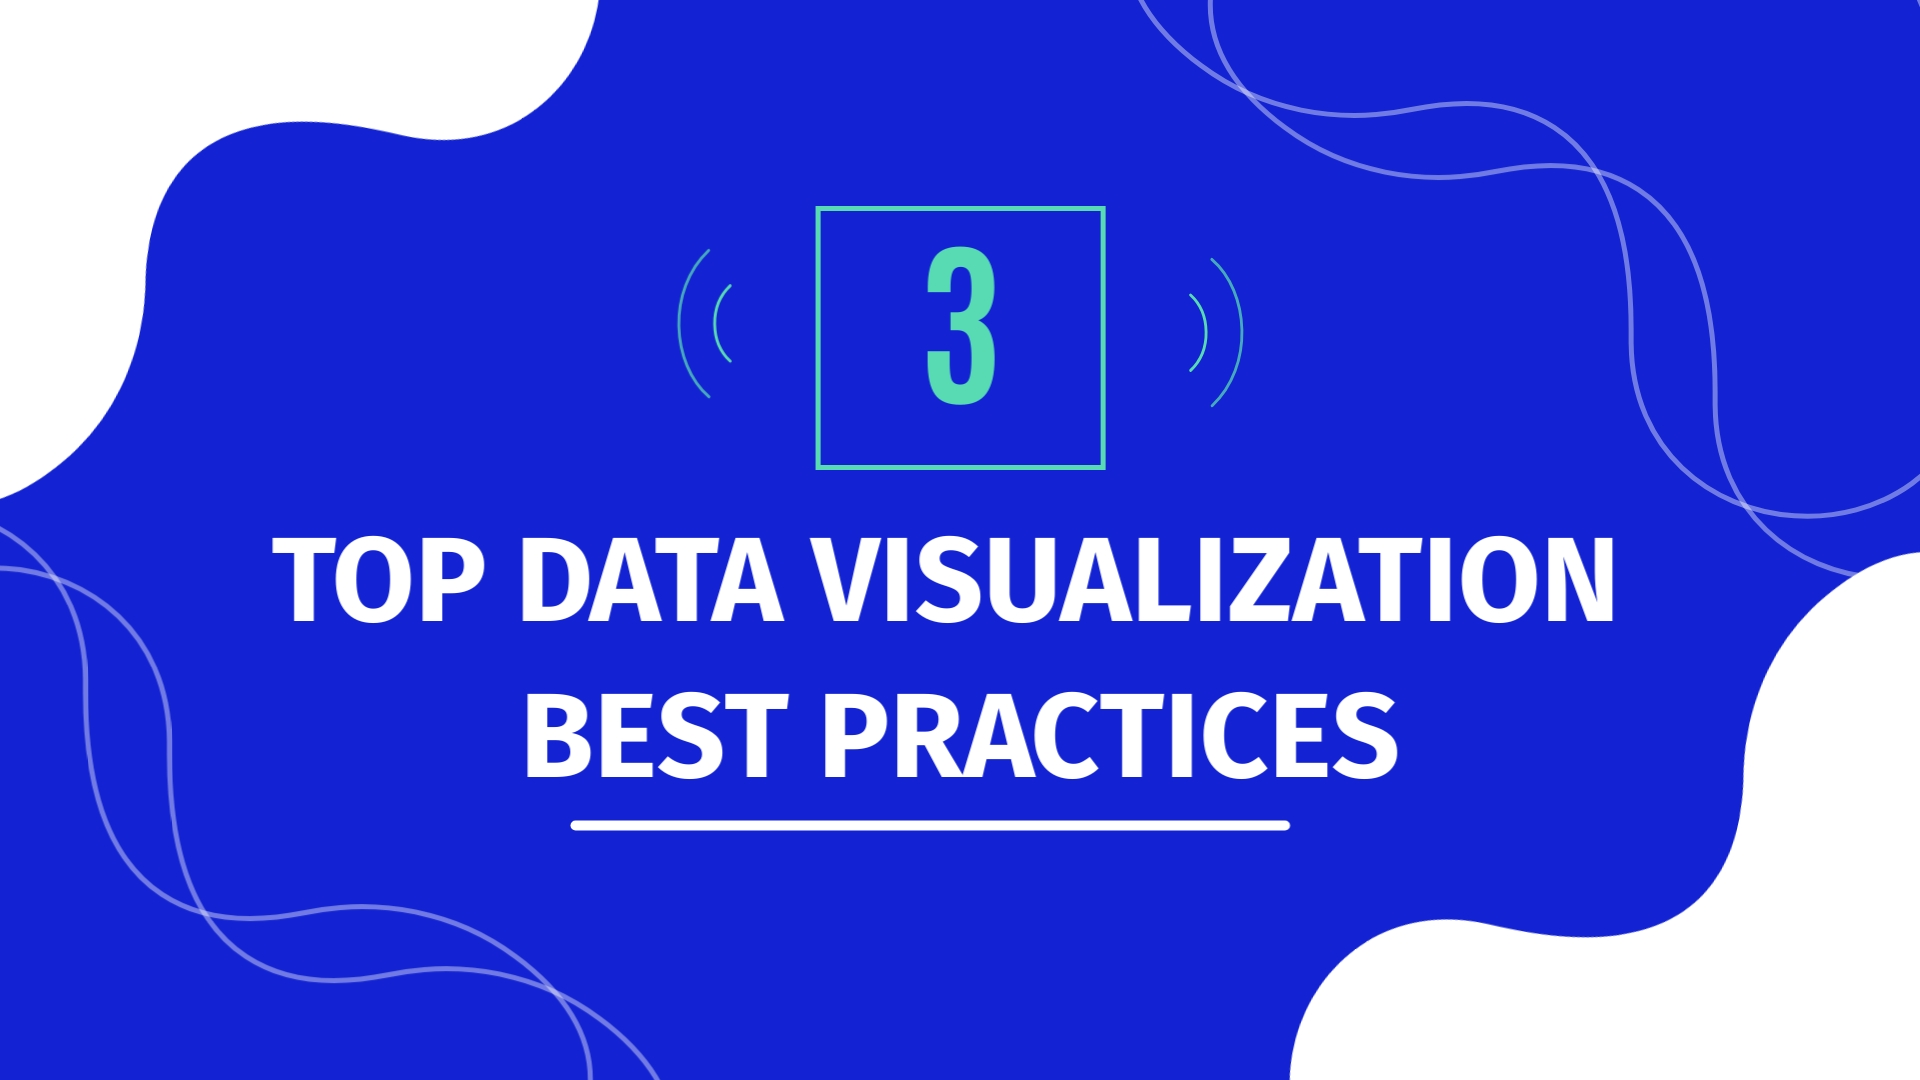 3 Top Data Visualization Best Practices - Listicle Video Template